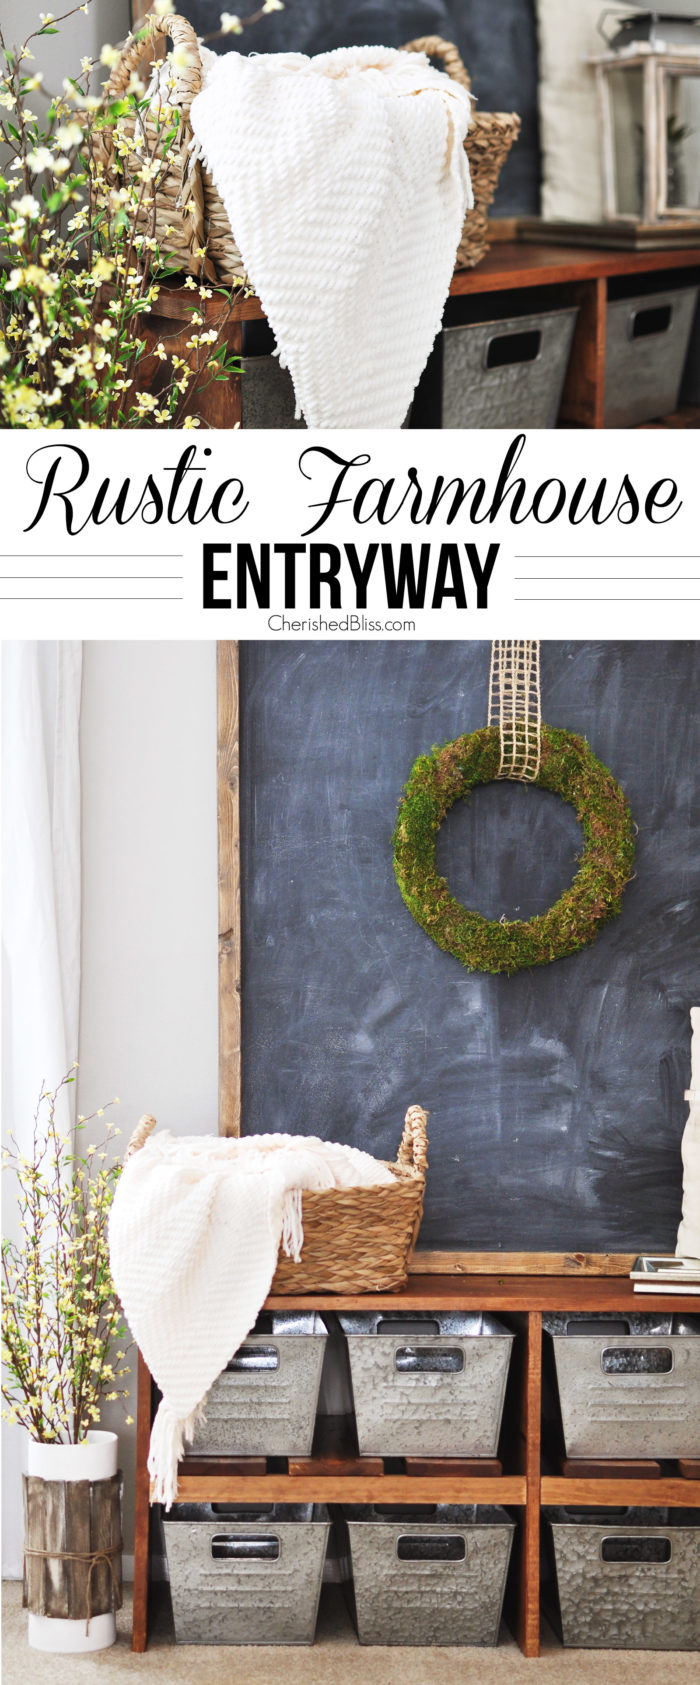 love this rustic farmhouse entryway that bench those bins i want it all